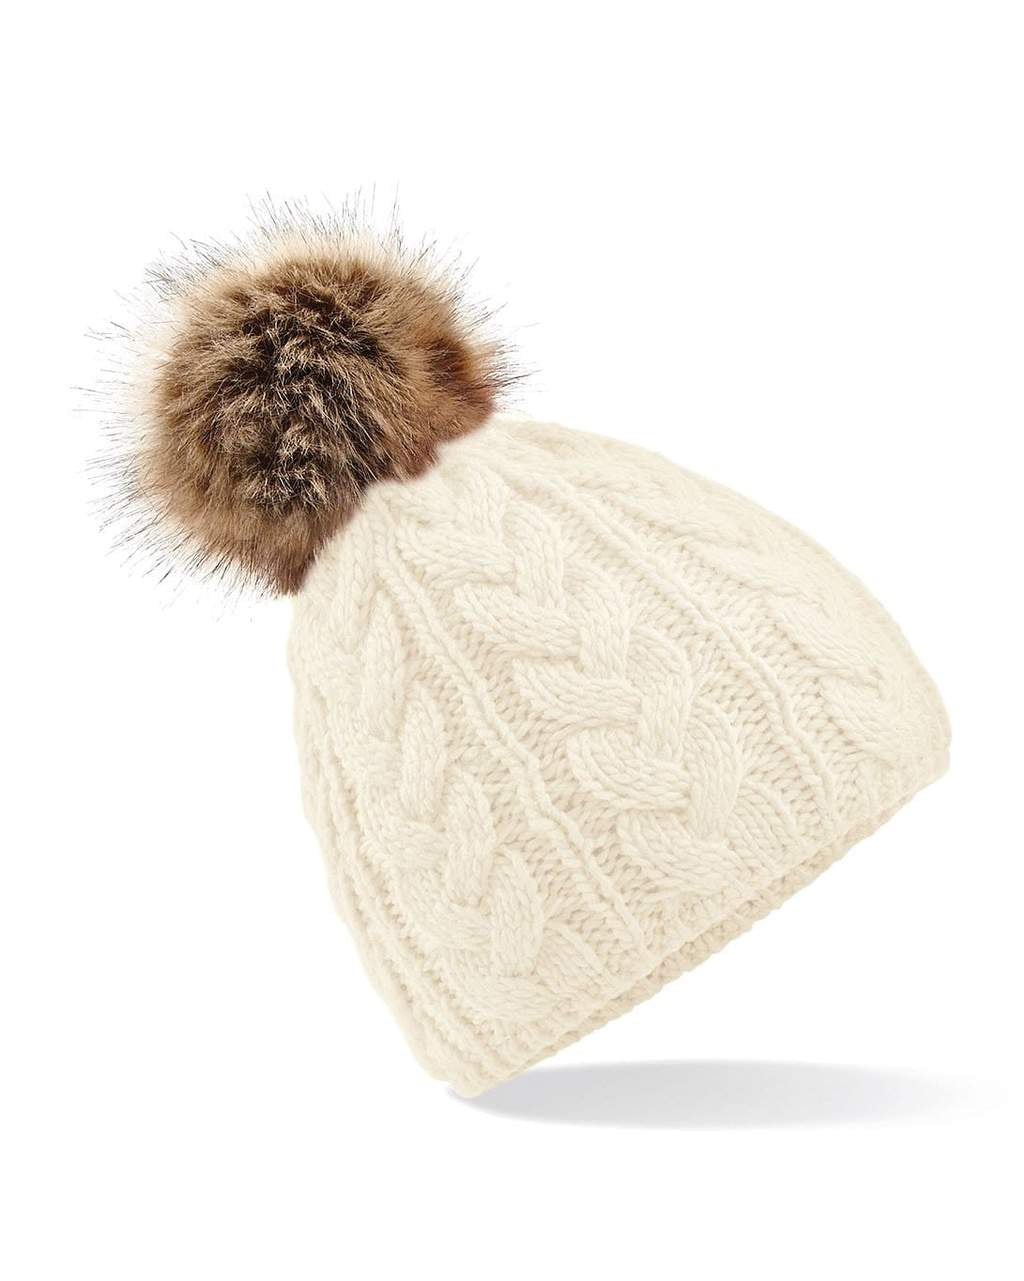 Cable Knit Beanie Hat Faux Fur White - Scattee